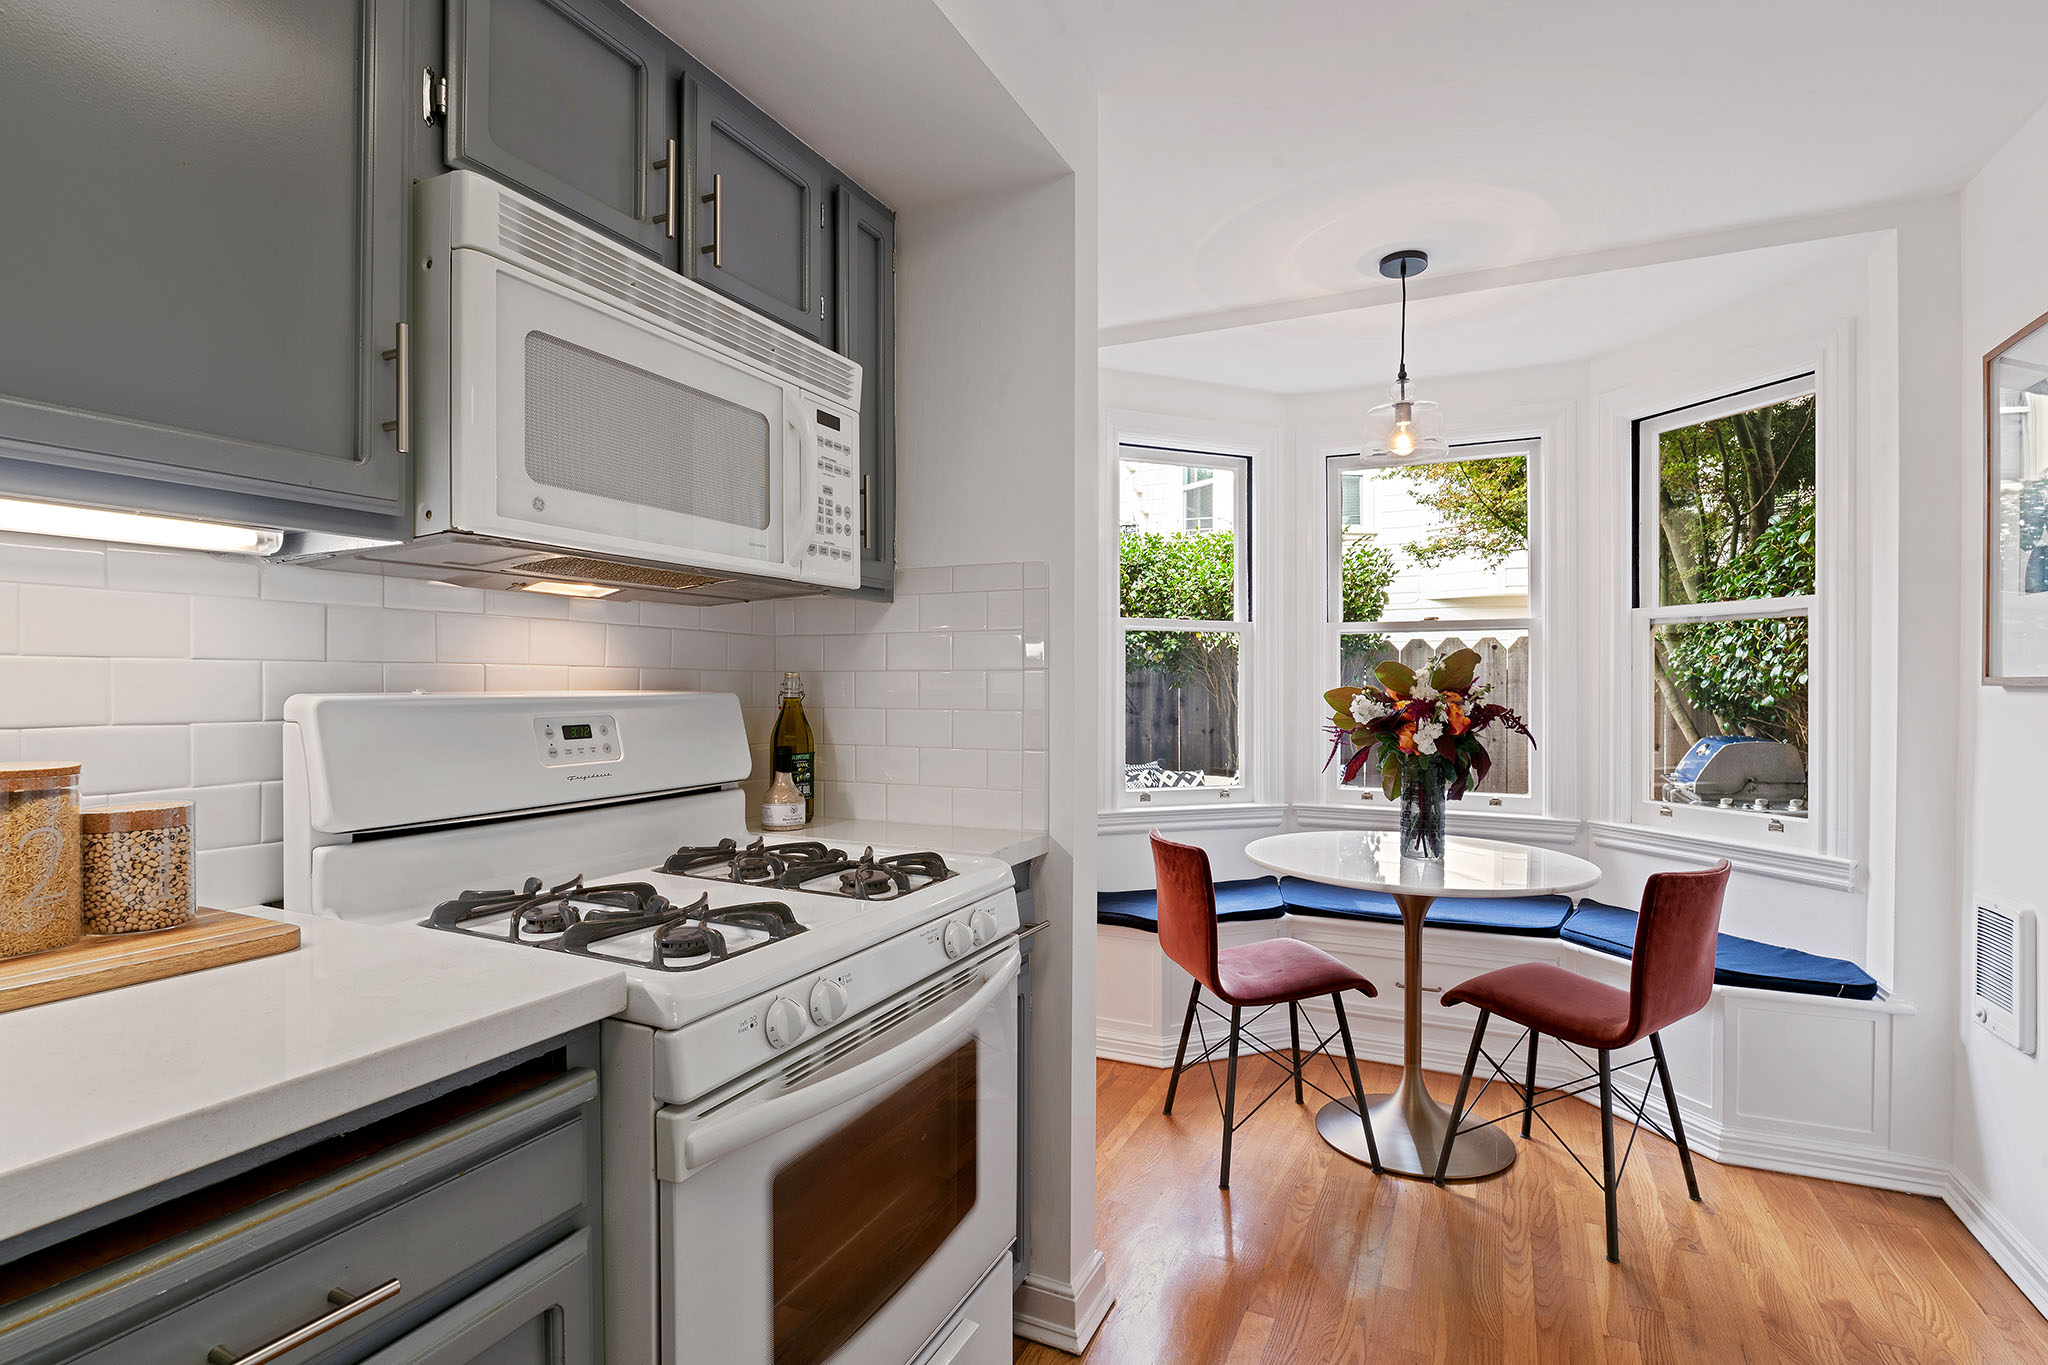 Kitchen with eating area and bench - SF home